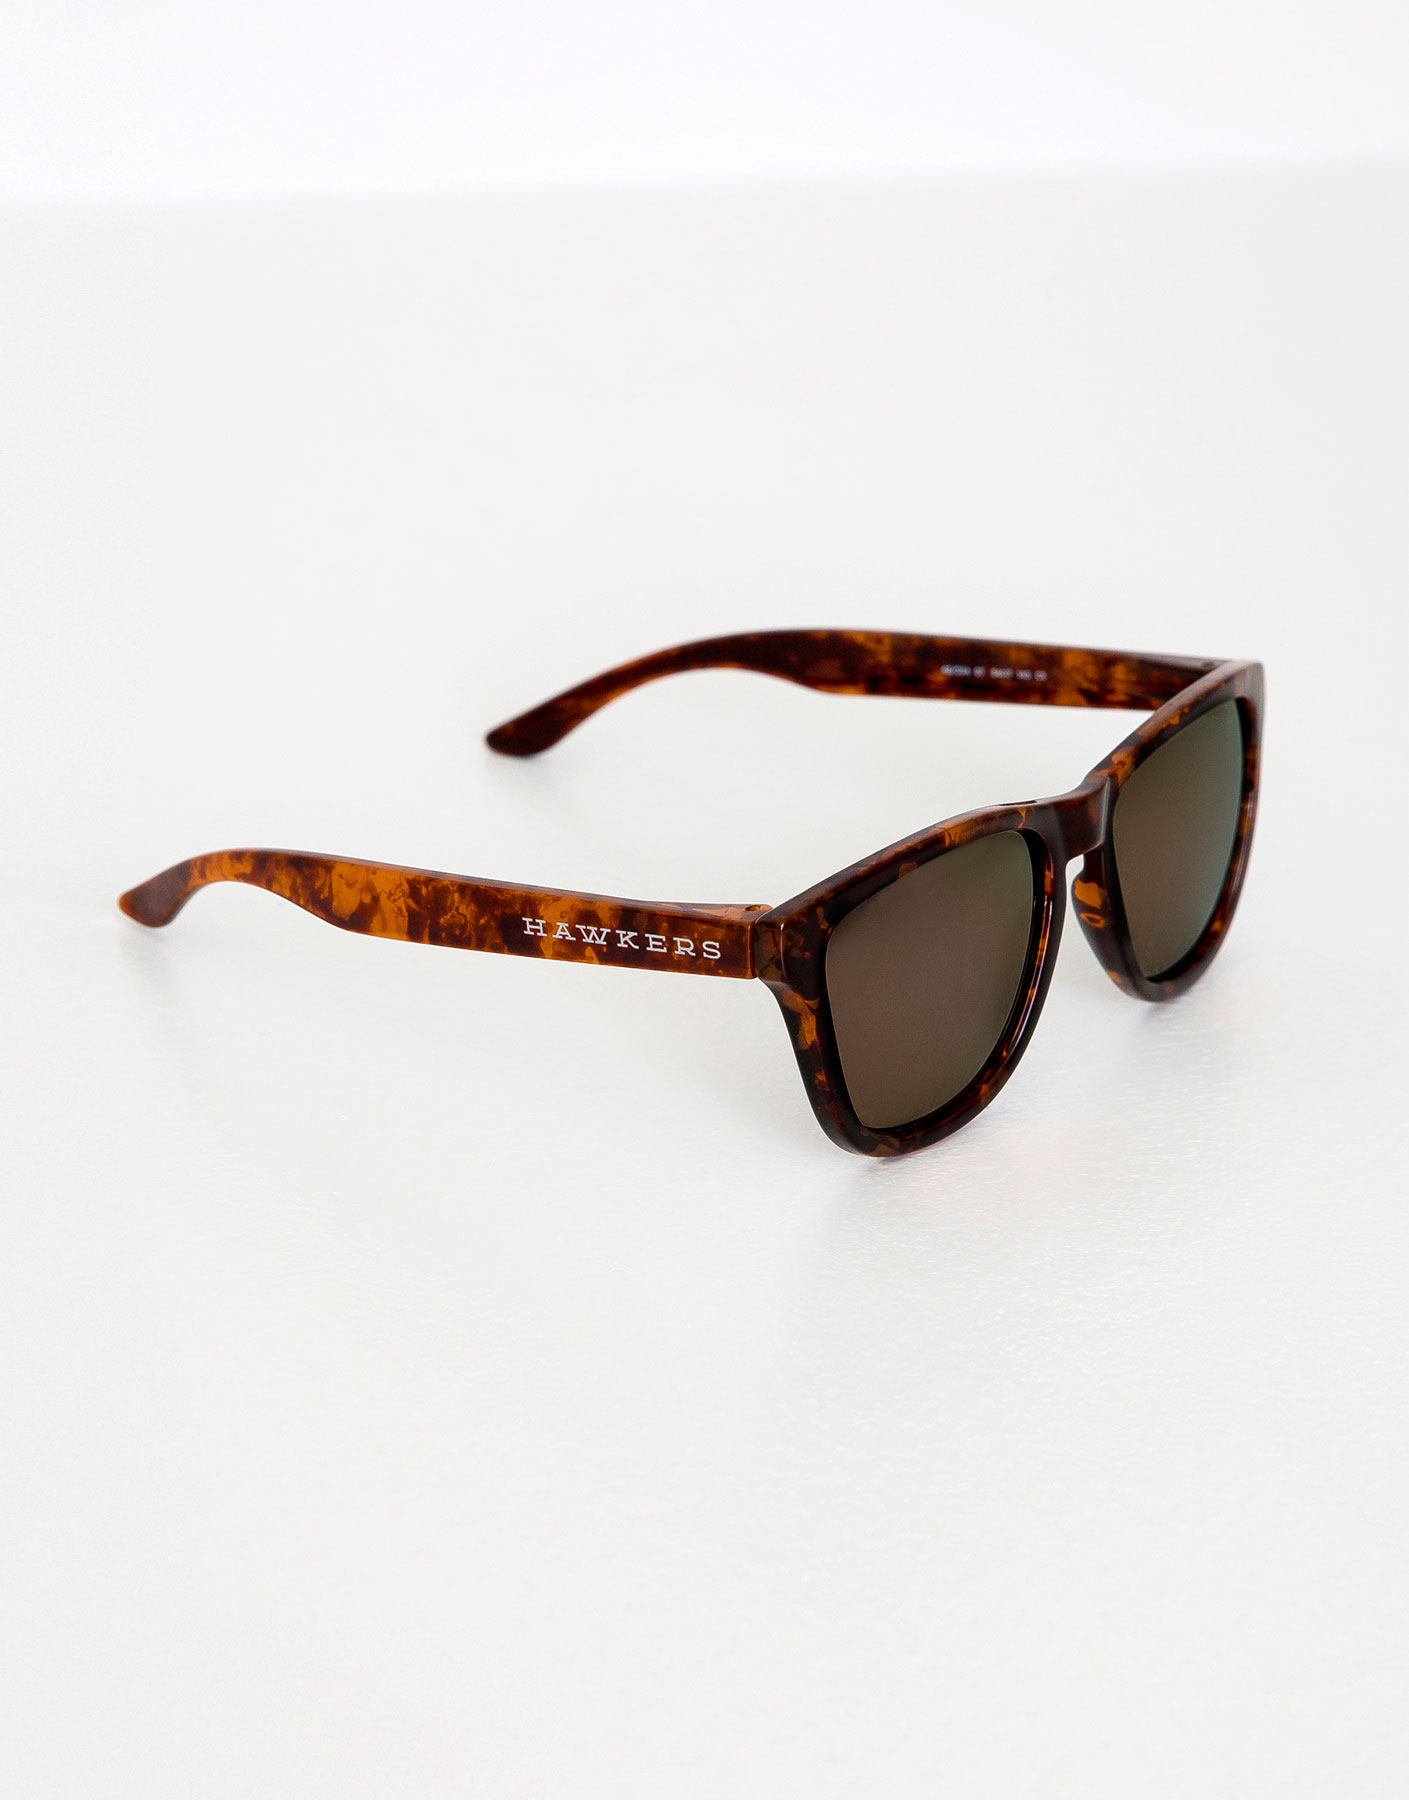 Gafas de sol hawkers carey dark one